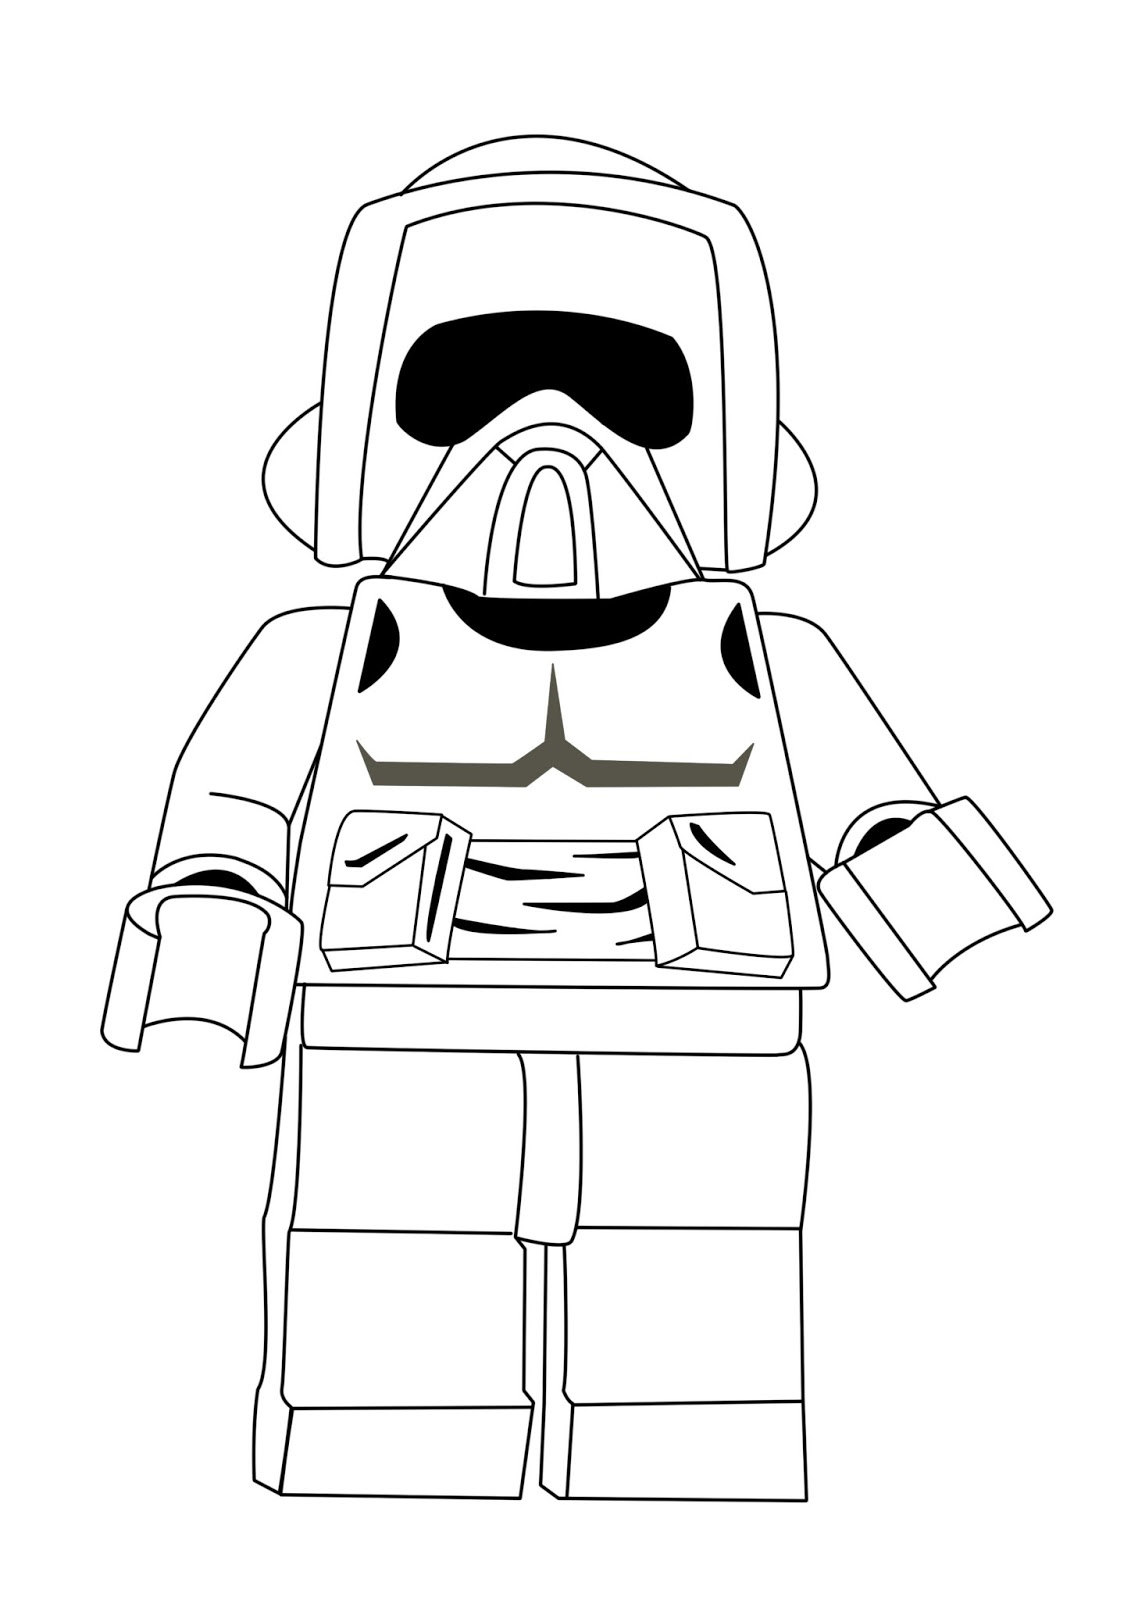 Star Wars Clone Coloring Pages Coloring Excelent Lego Star Wars Coloring Pages Free